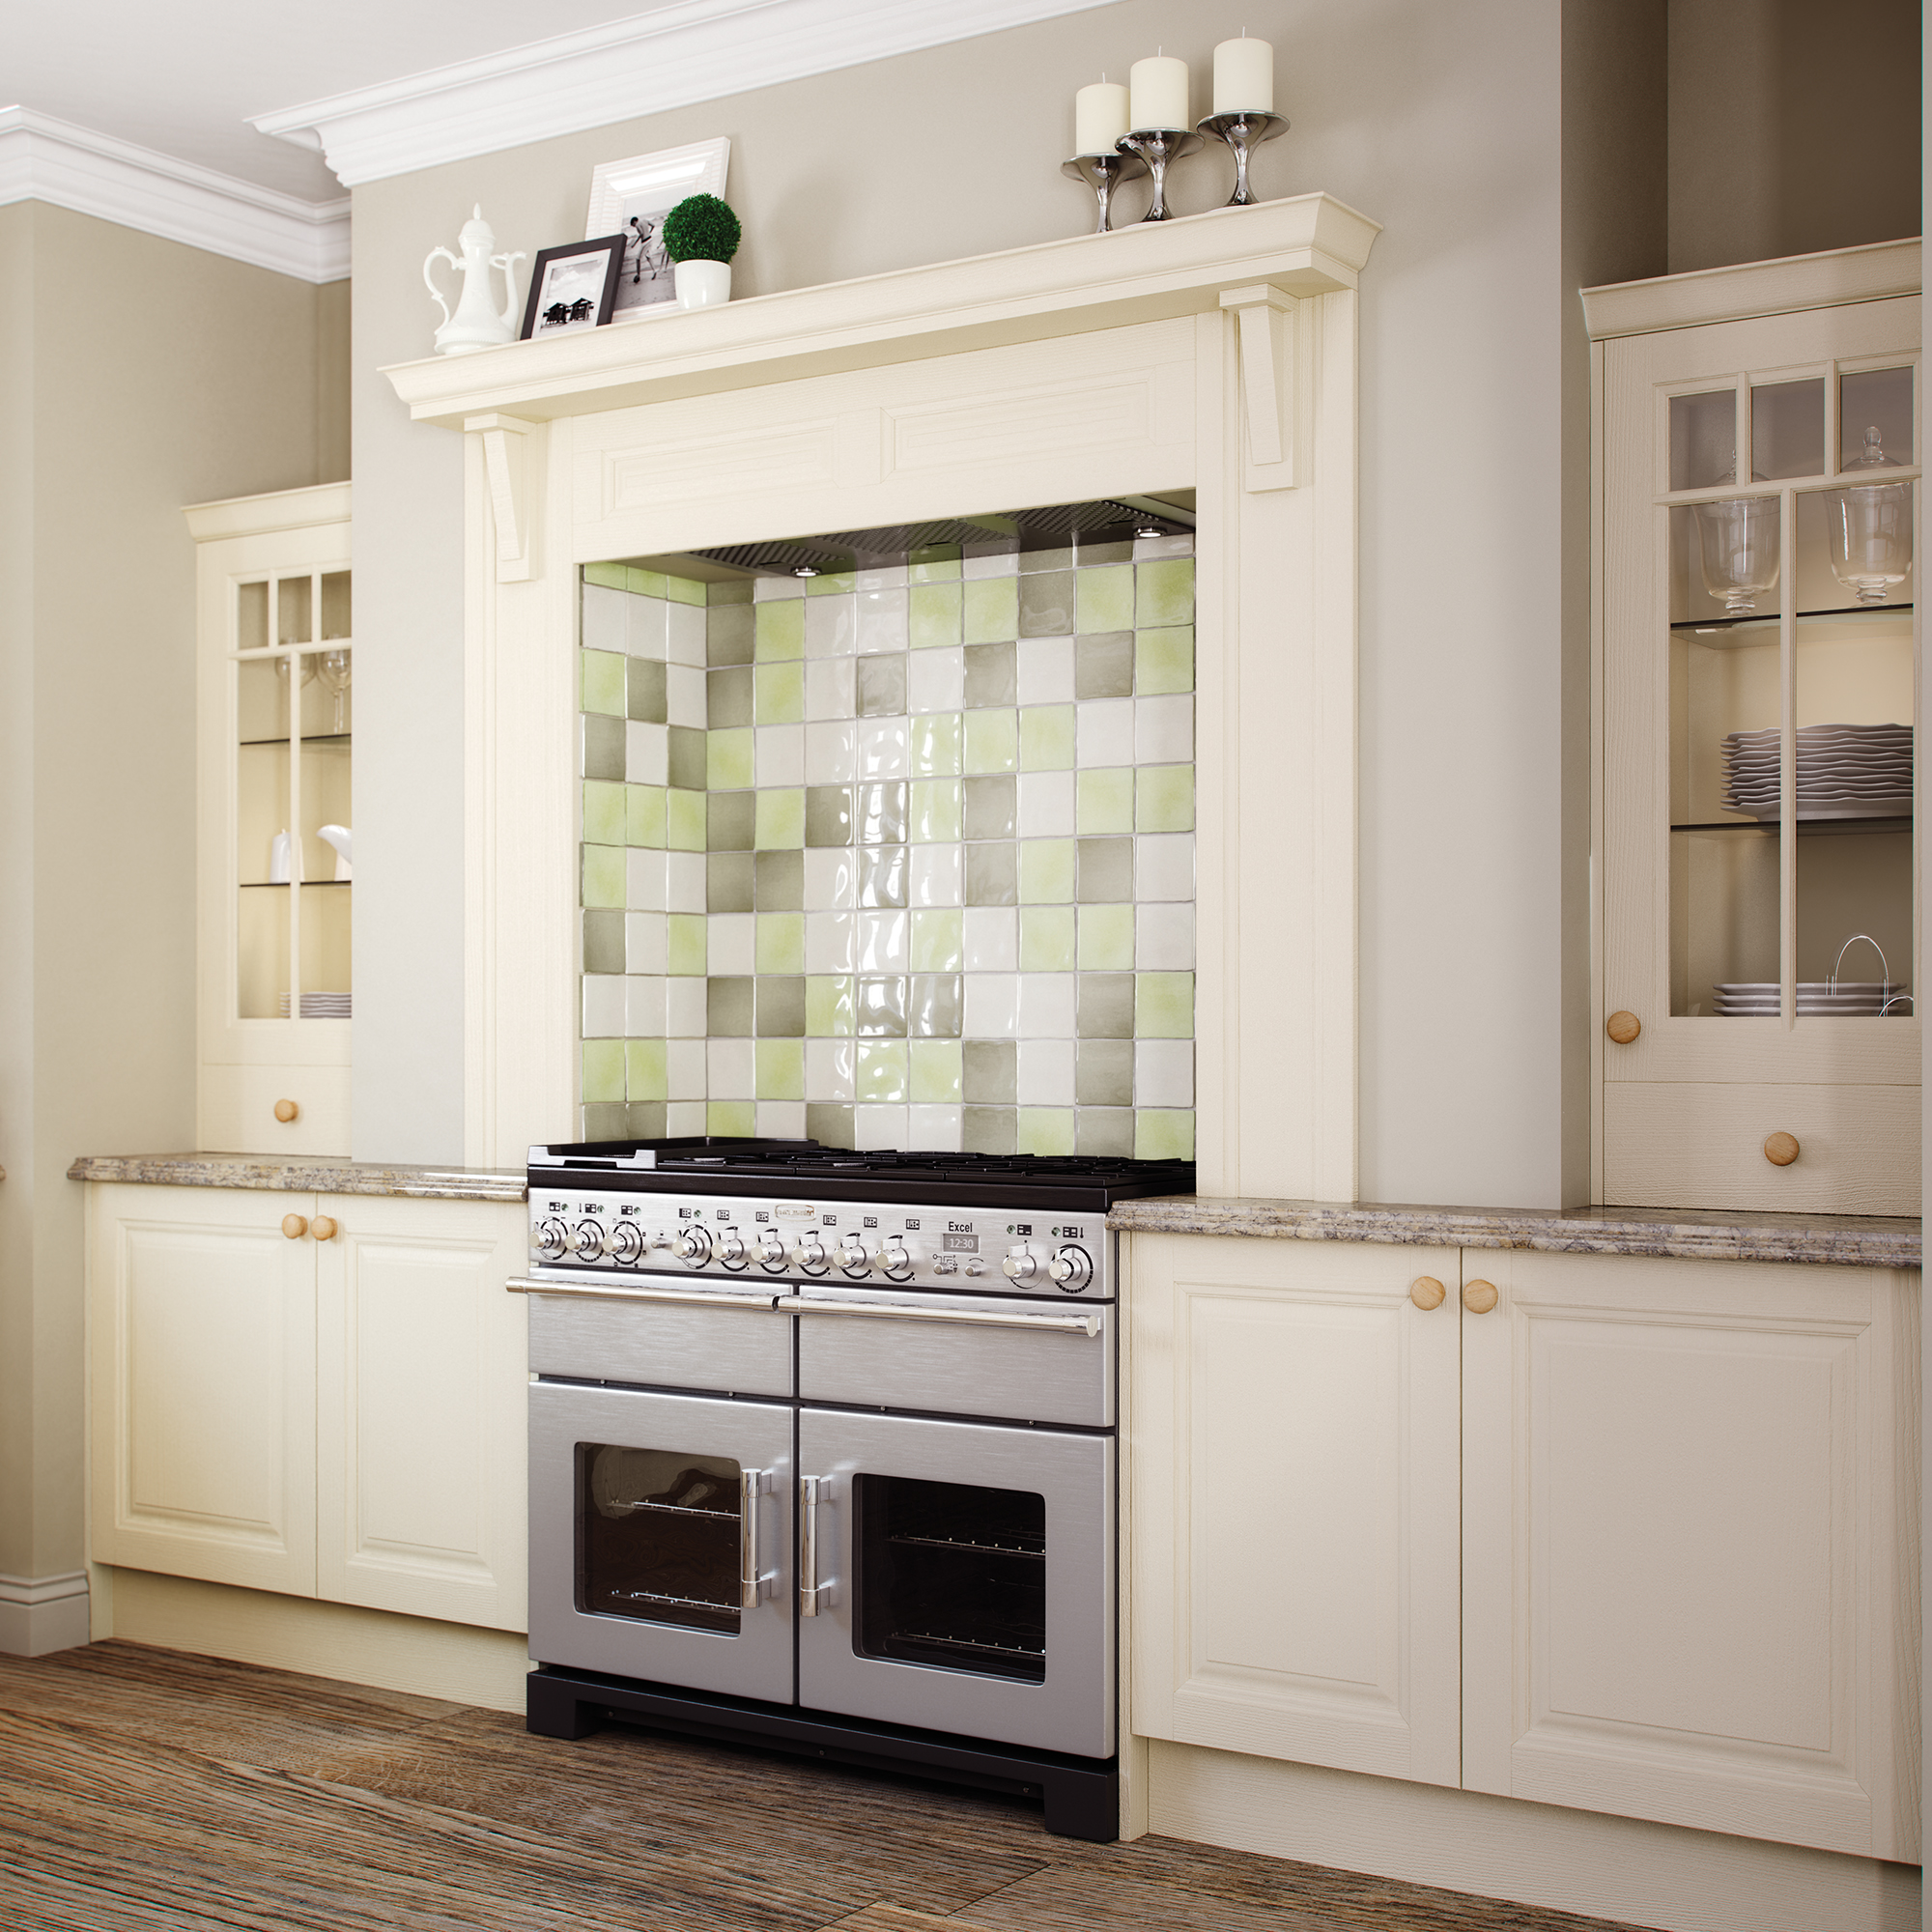 Cheap Cabinets For Sale: Jefferson Ivory : Cheap Kitchen Units And Cabinets For